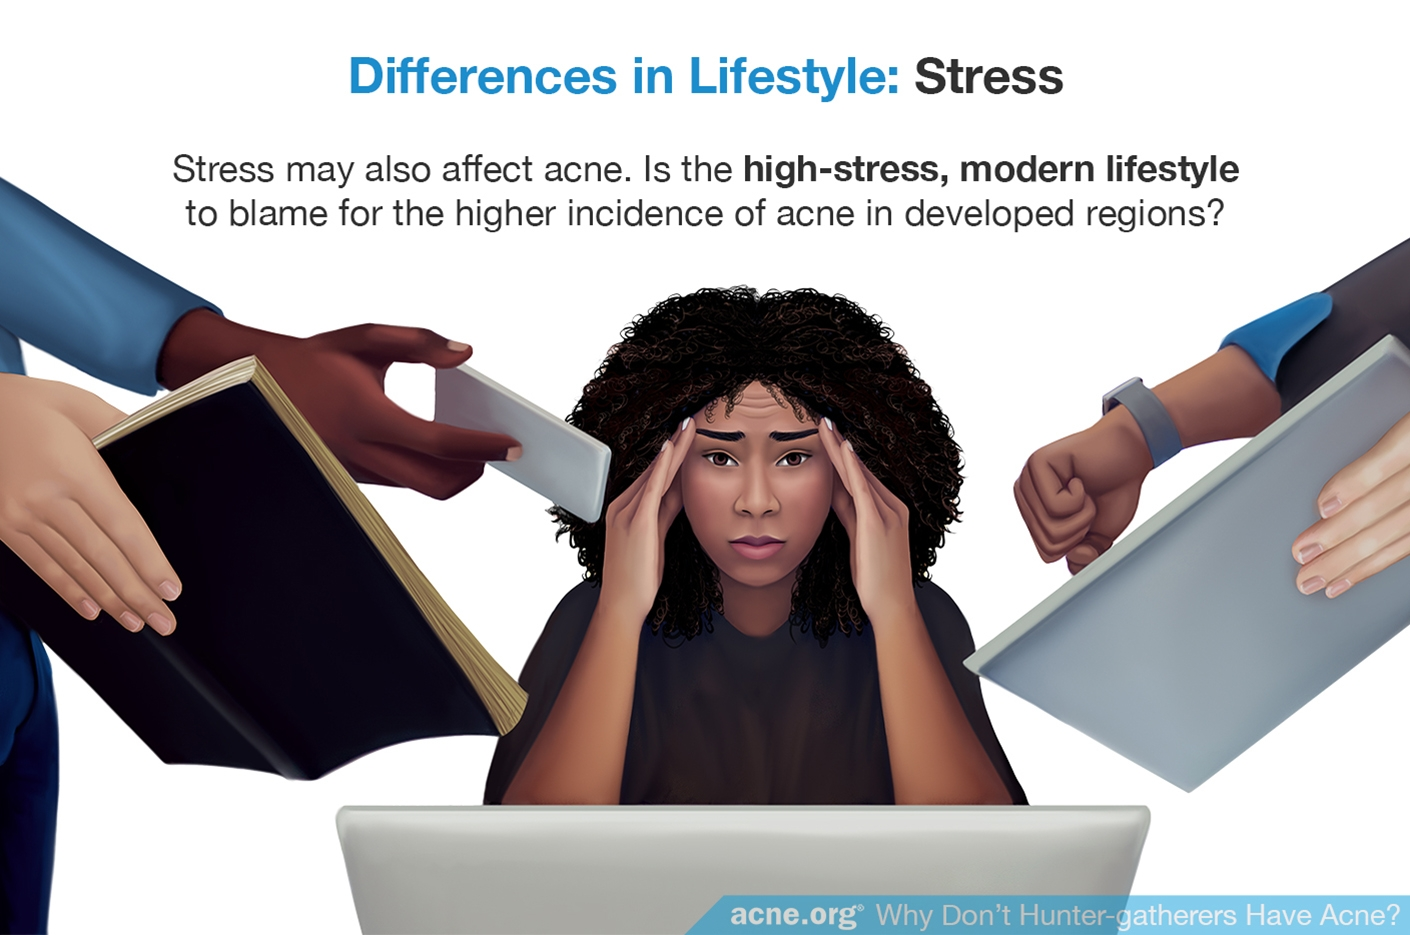 Differences in Lifestyle: Stress